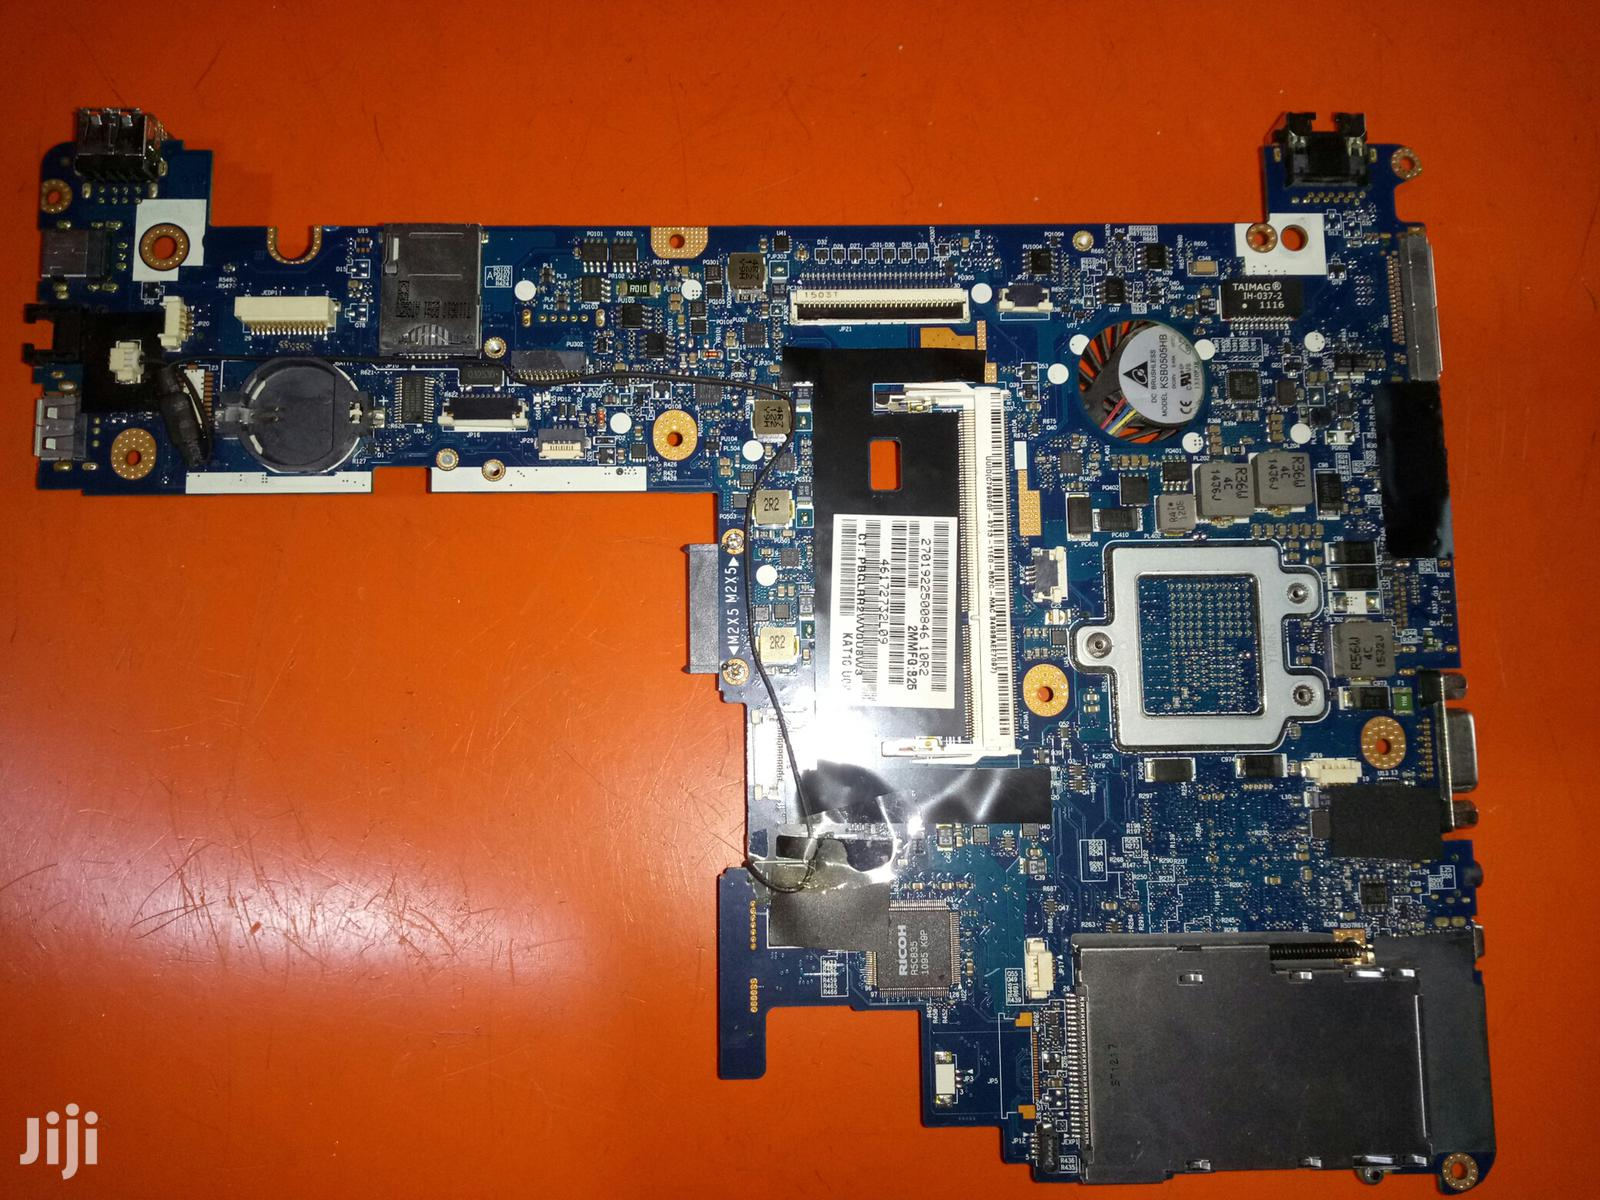 Hp Elitebook 2540p Motherboard 598762-001 | Computer Hardware for sale in Port-Harcourt, Rivers State, Nigeria